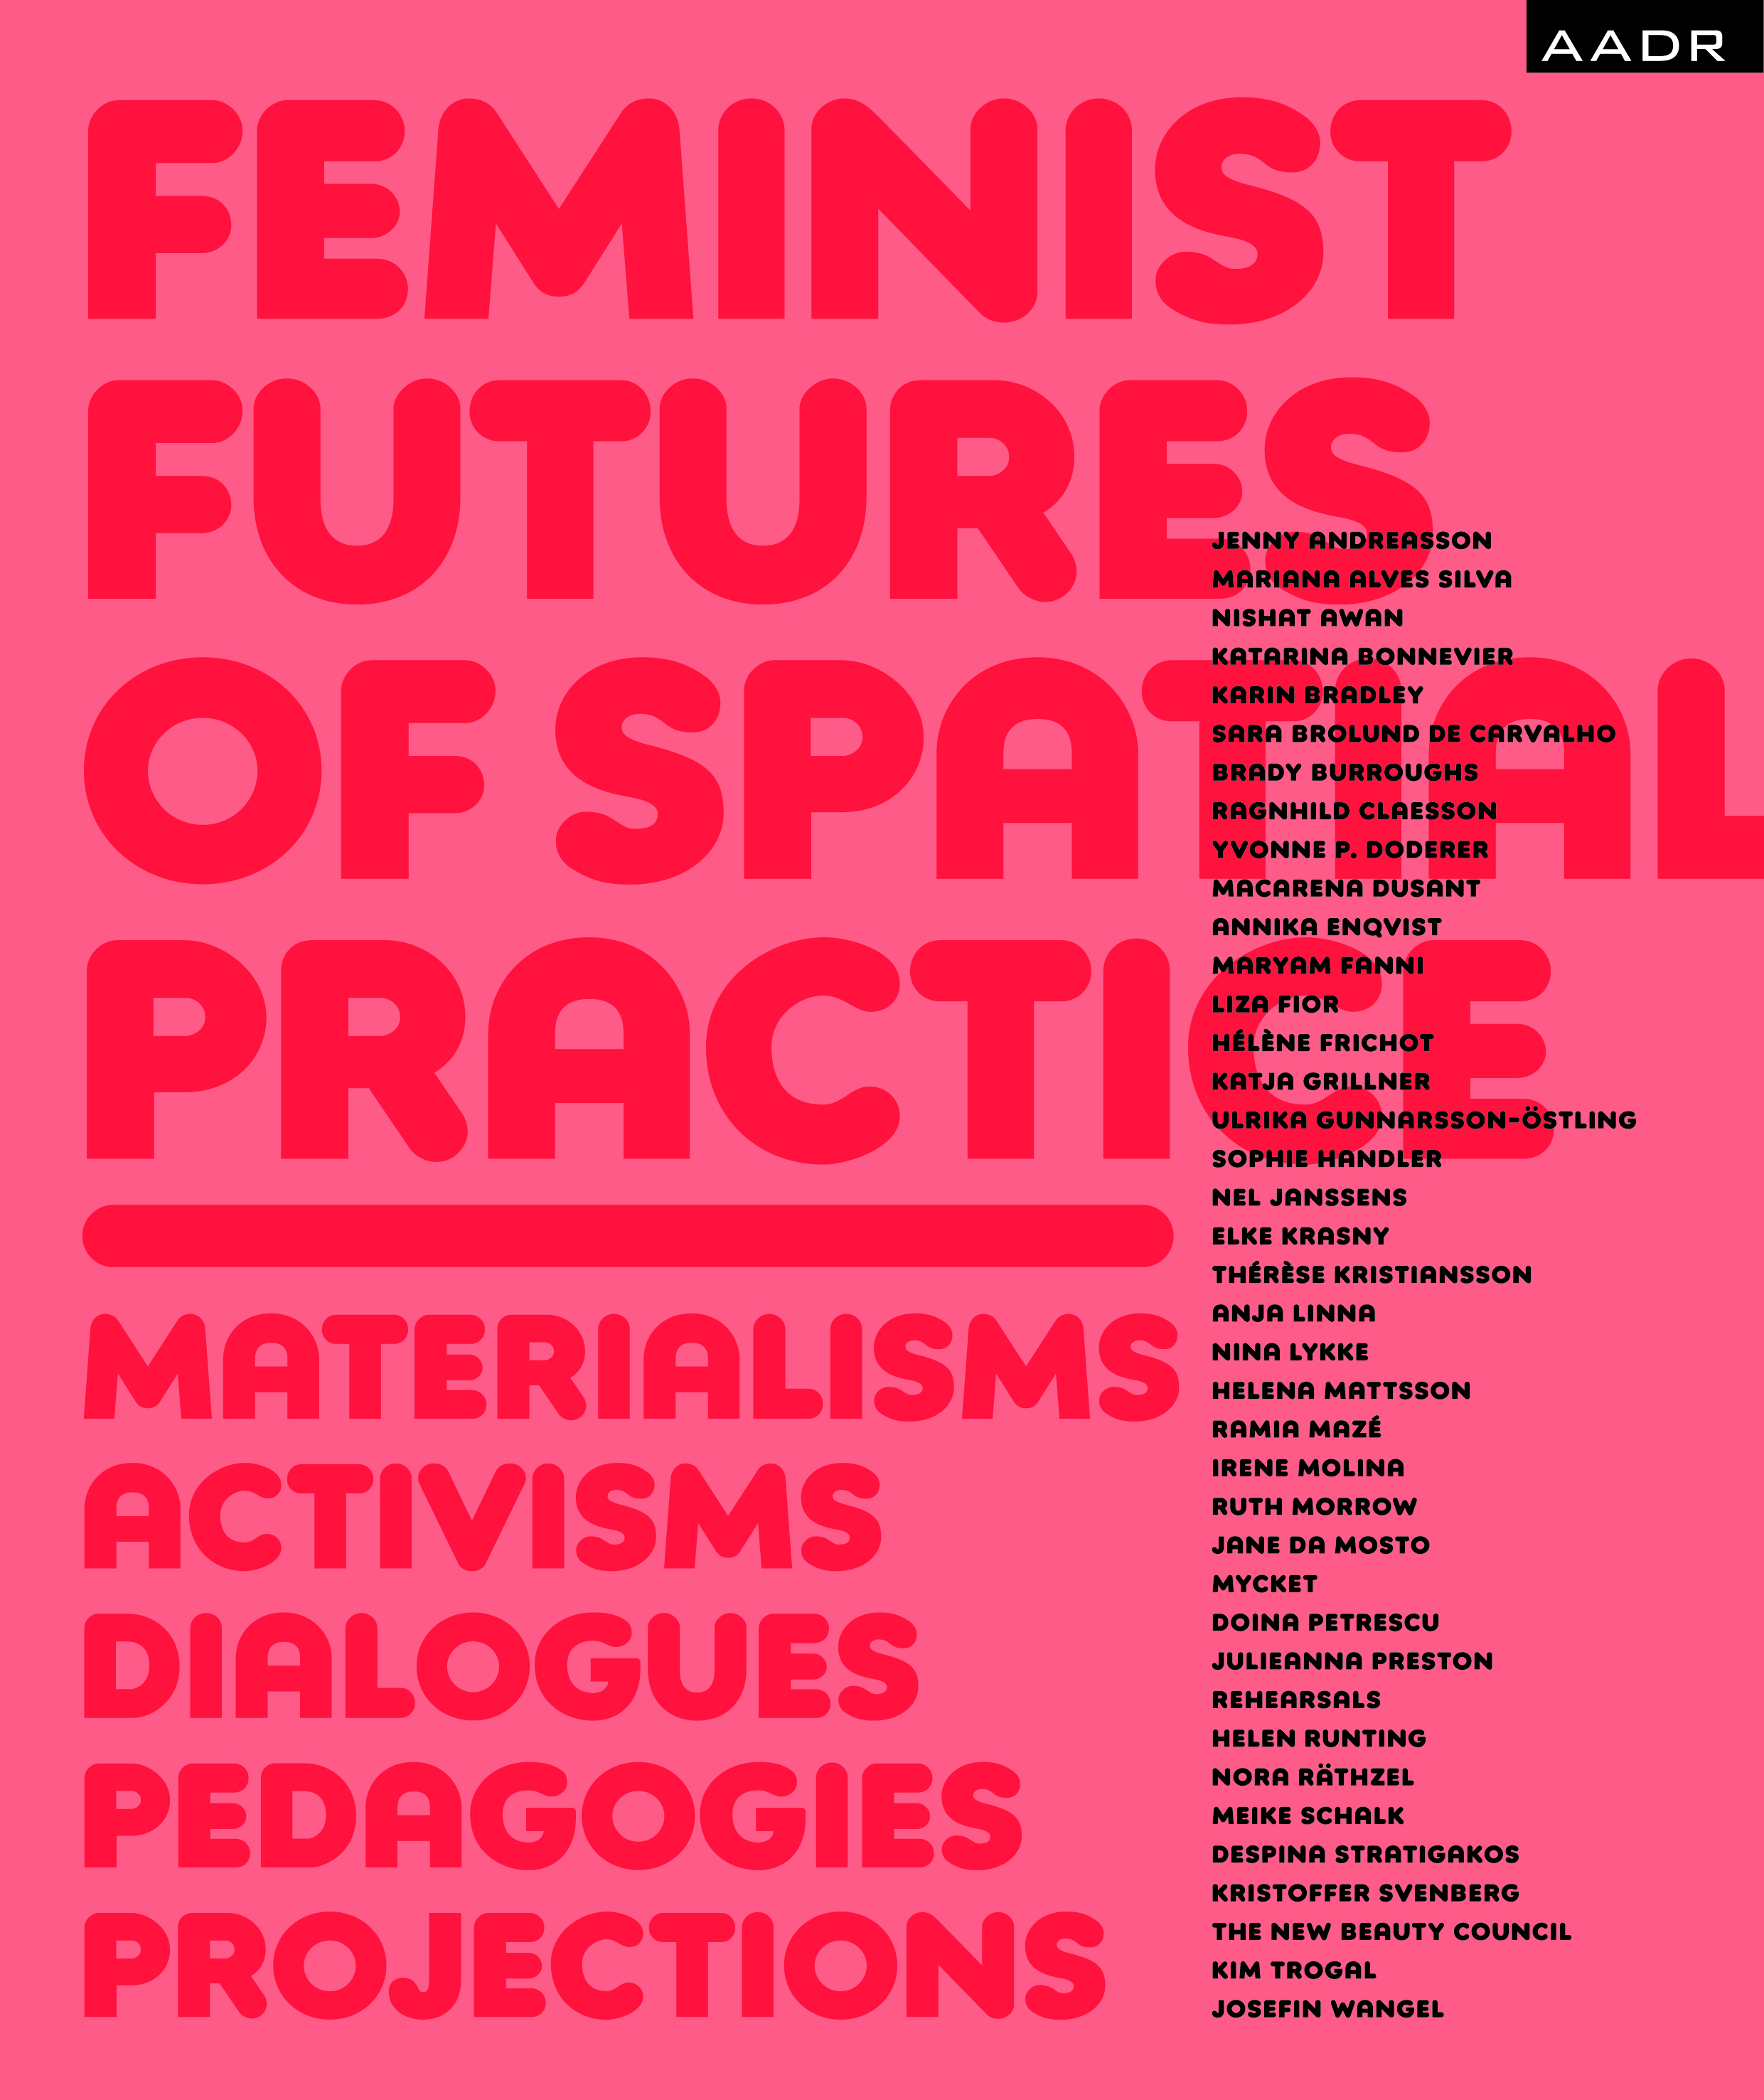 Femminist Futures Of Spatial Practice: Materialisms, Activisms, Dialogues, Pedagogies, Projections